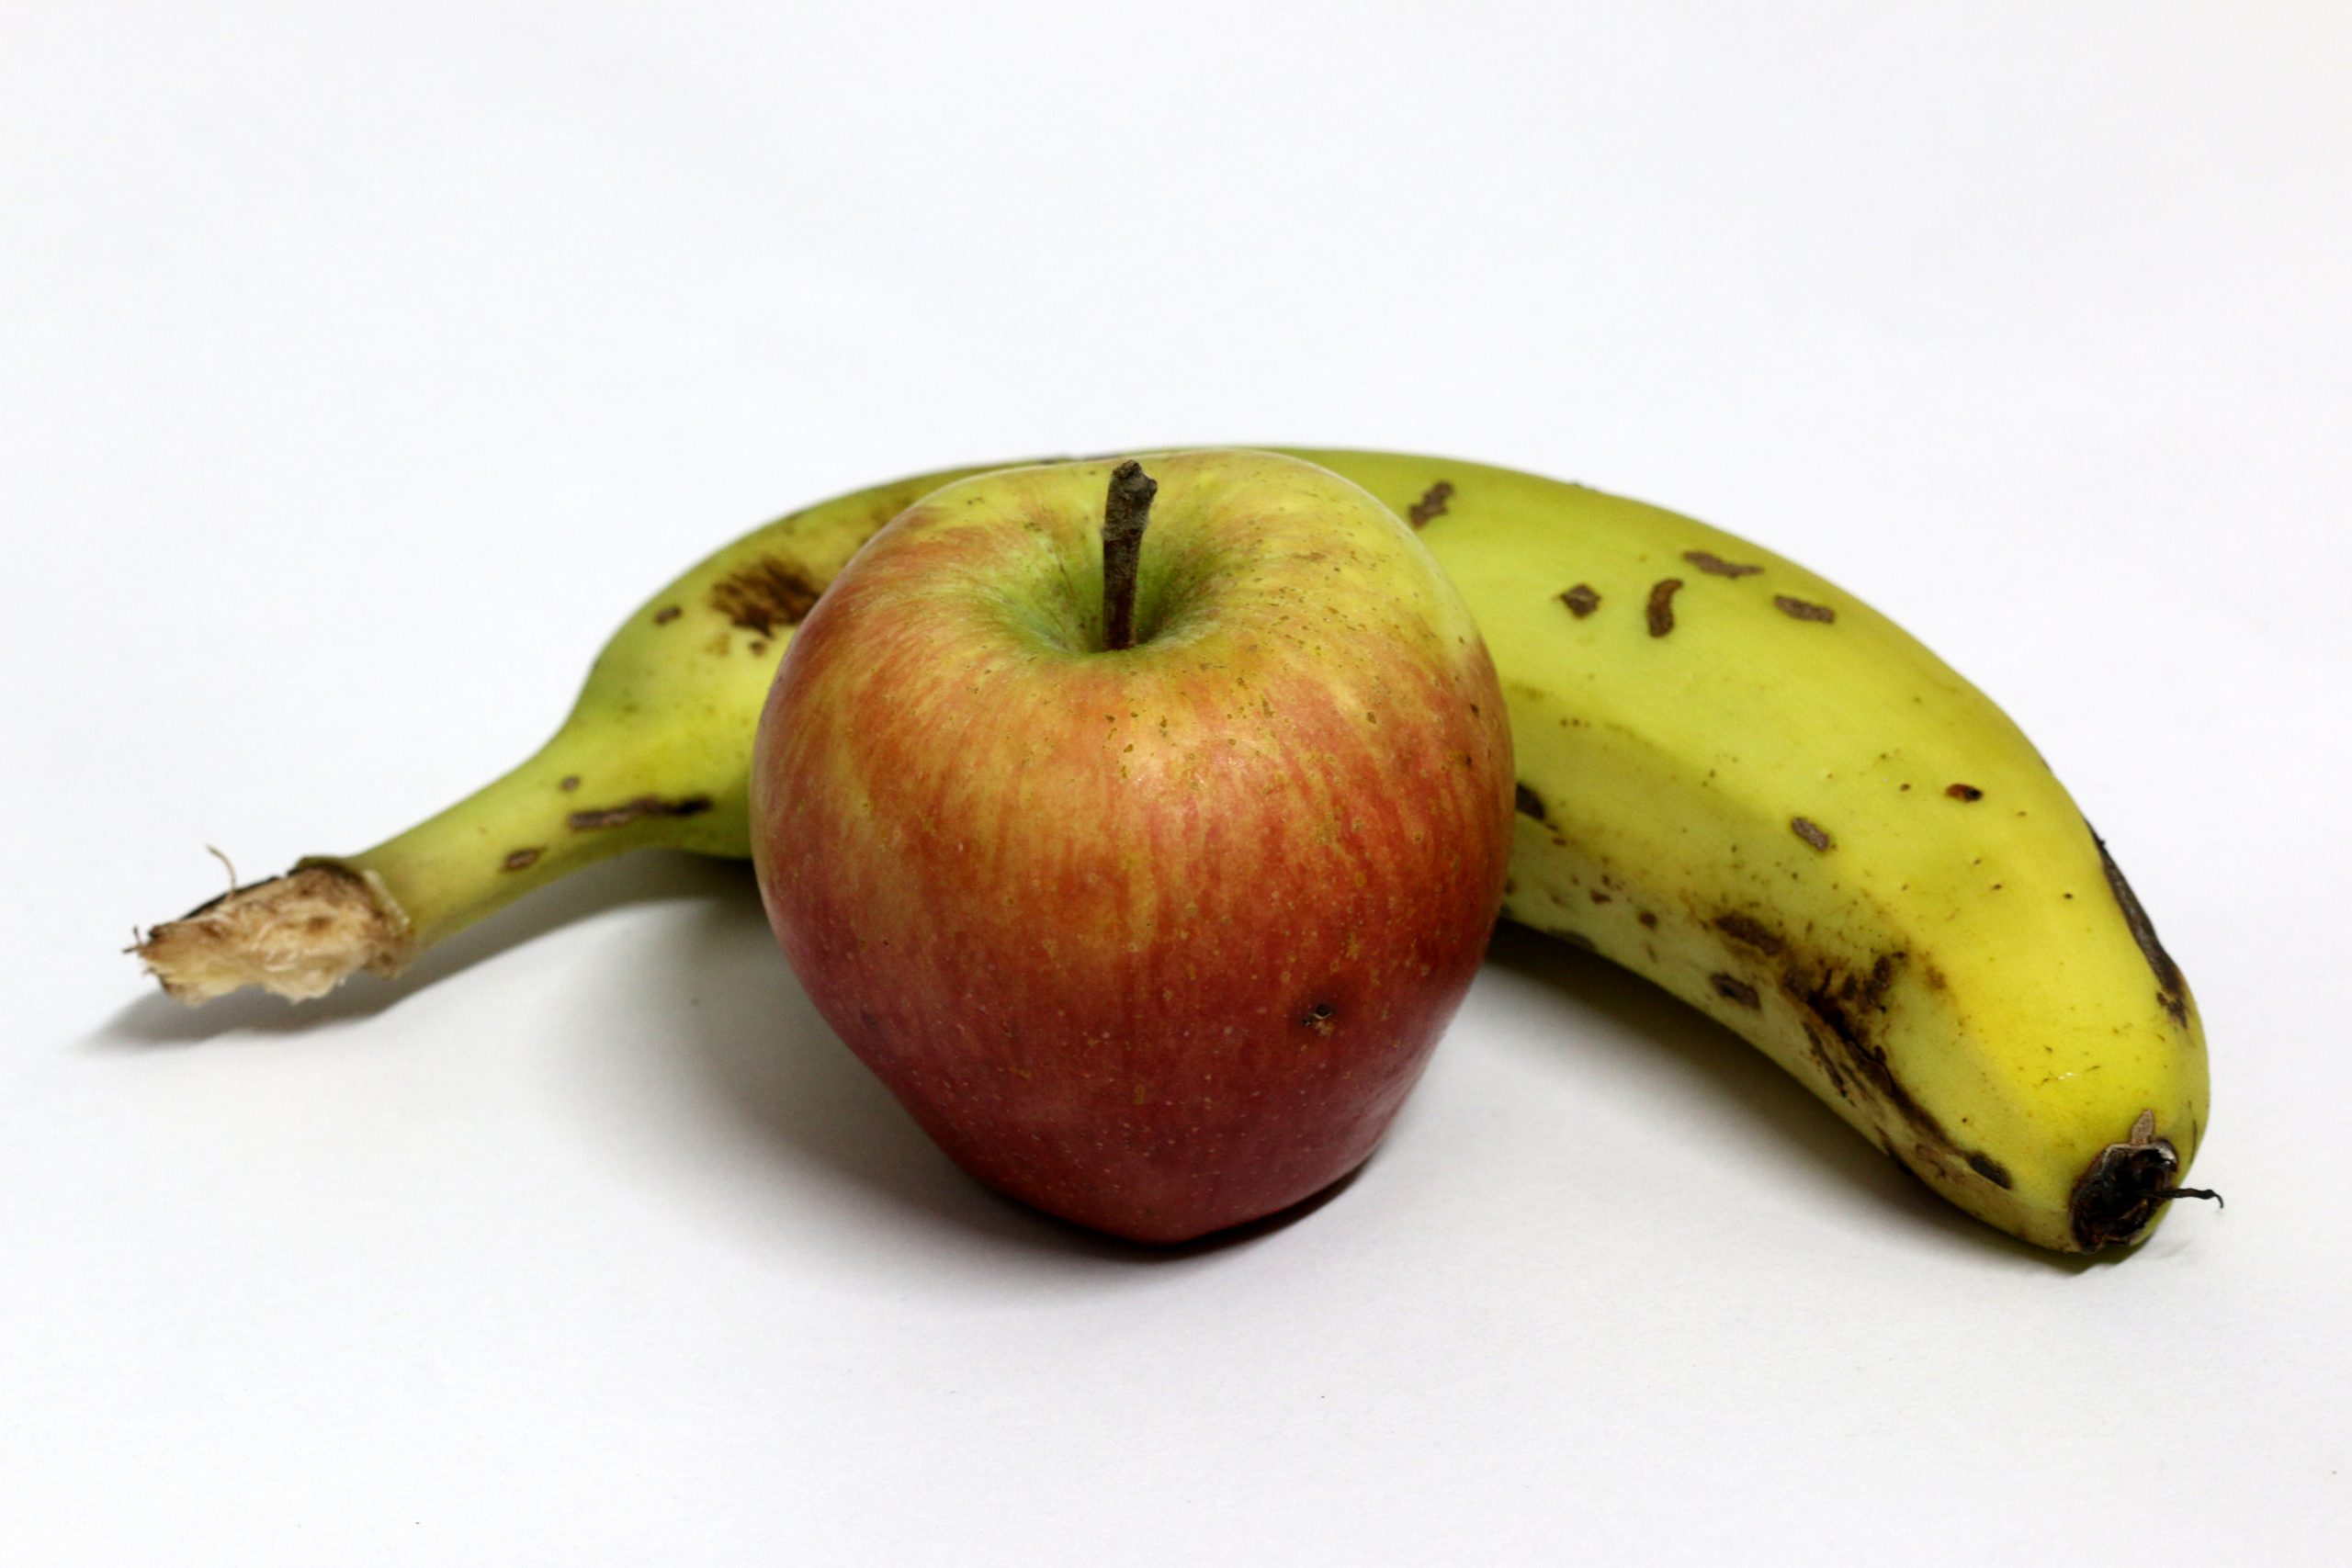 Bannana and apple